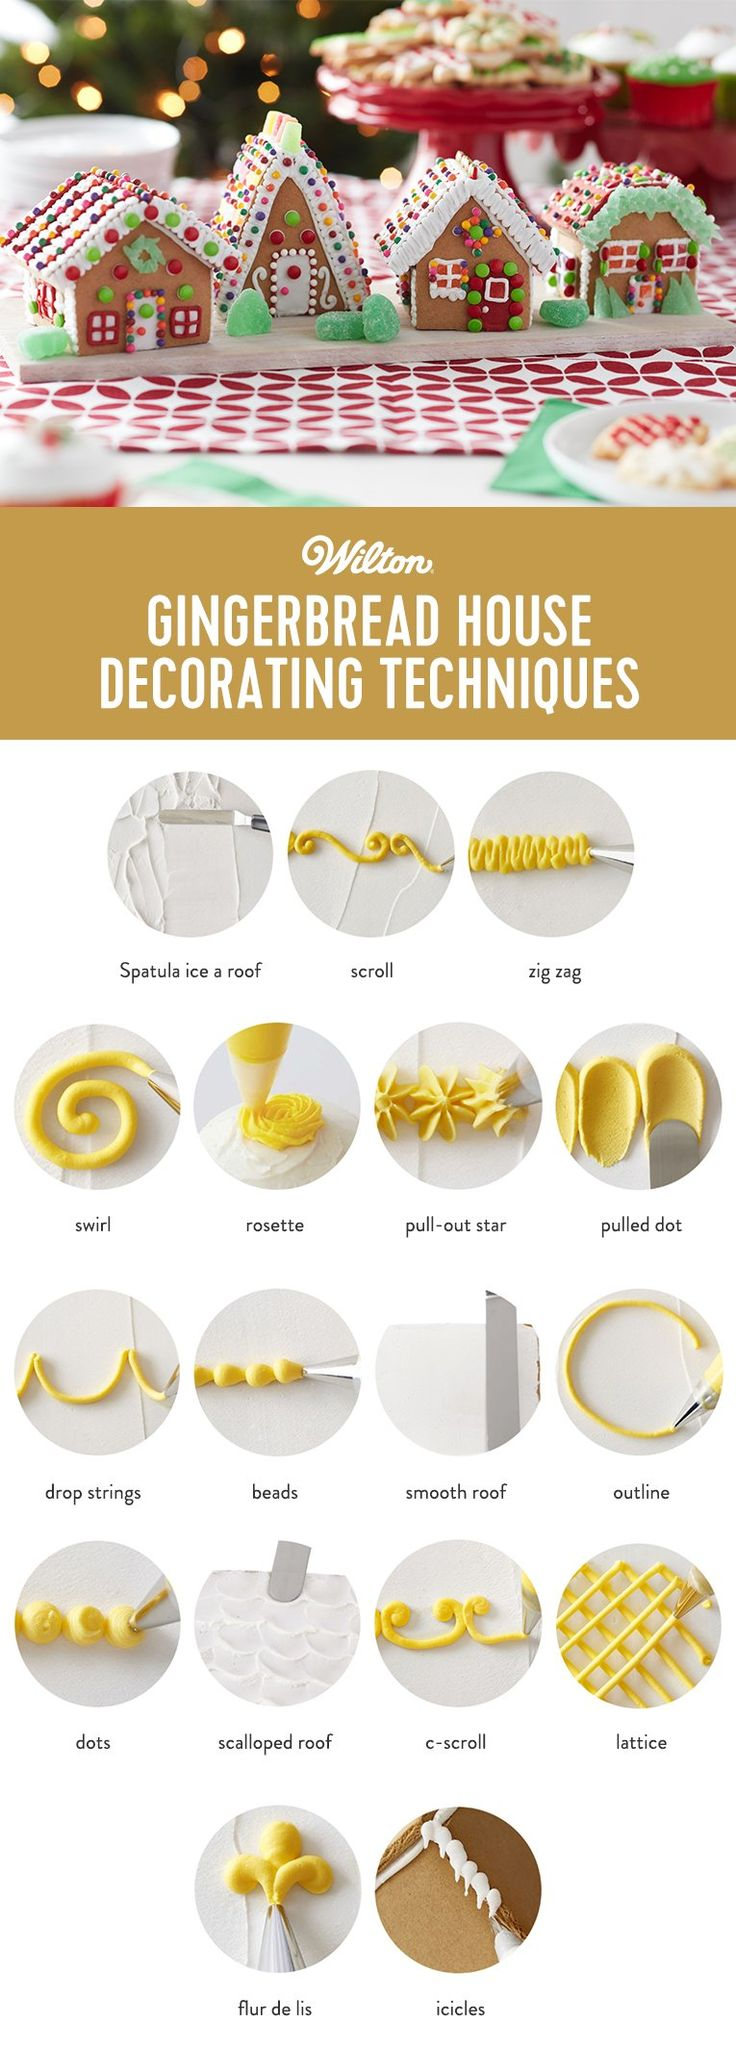 Gingerbread House Decorating Techniques - Click to learn different techniques to decorate a show stopping gingerbread house! Learn how to pipe scroll, zig zag, swirl and other designs to decorate a gingerbread house.